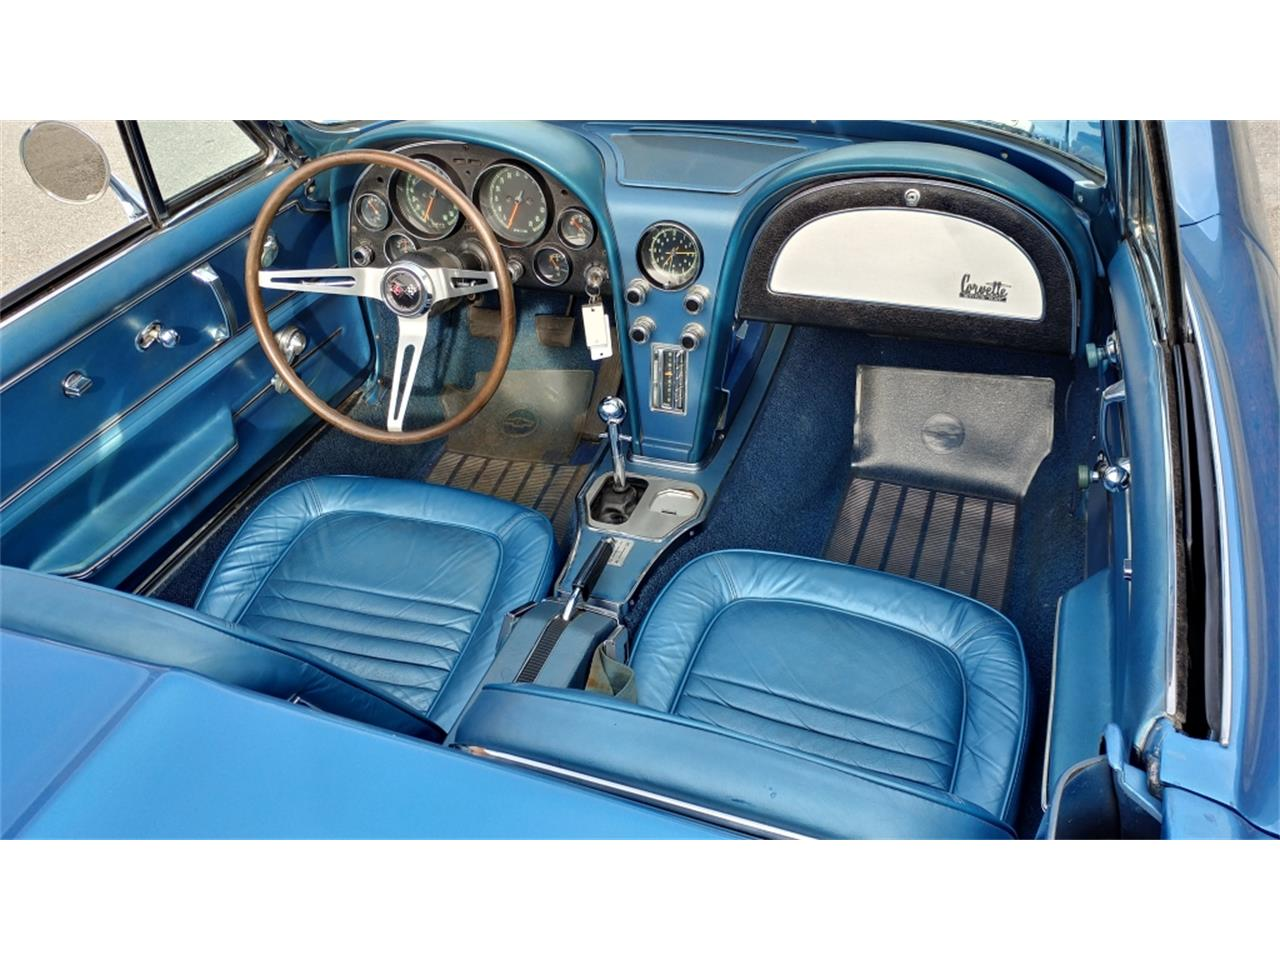 Large Picture of 1967 Chevrolet Corvette located in Missouri Offered by Vintage Vettes, LLC - MO2L